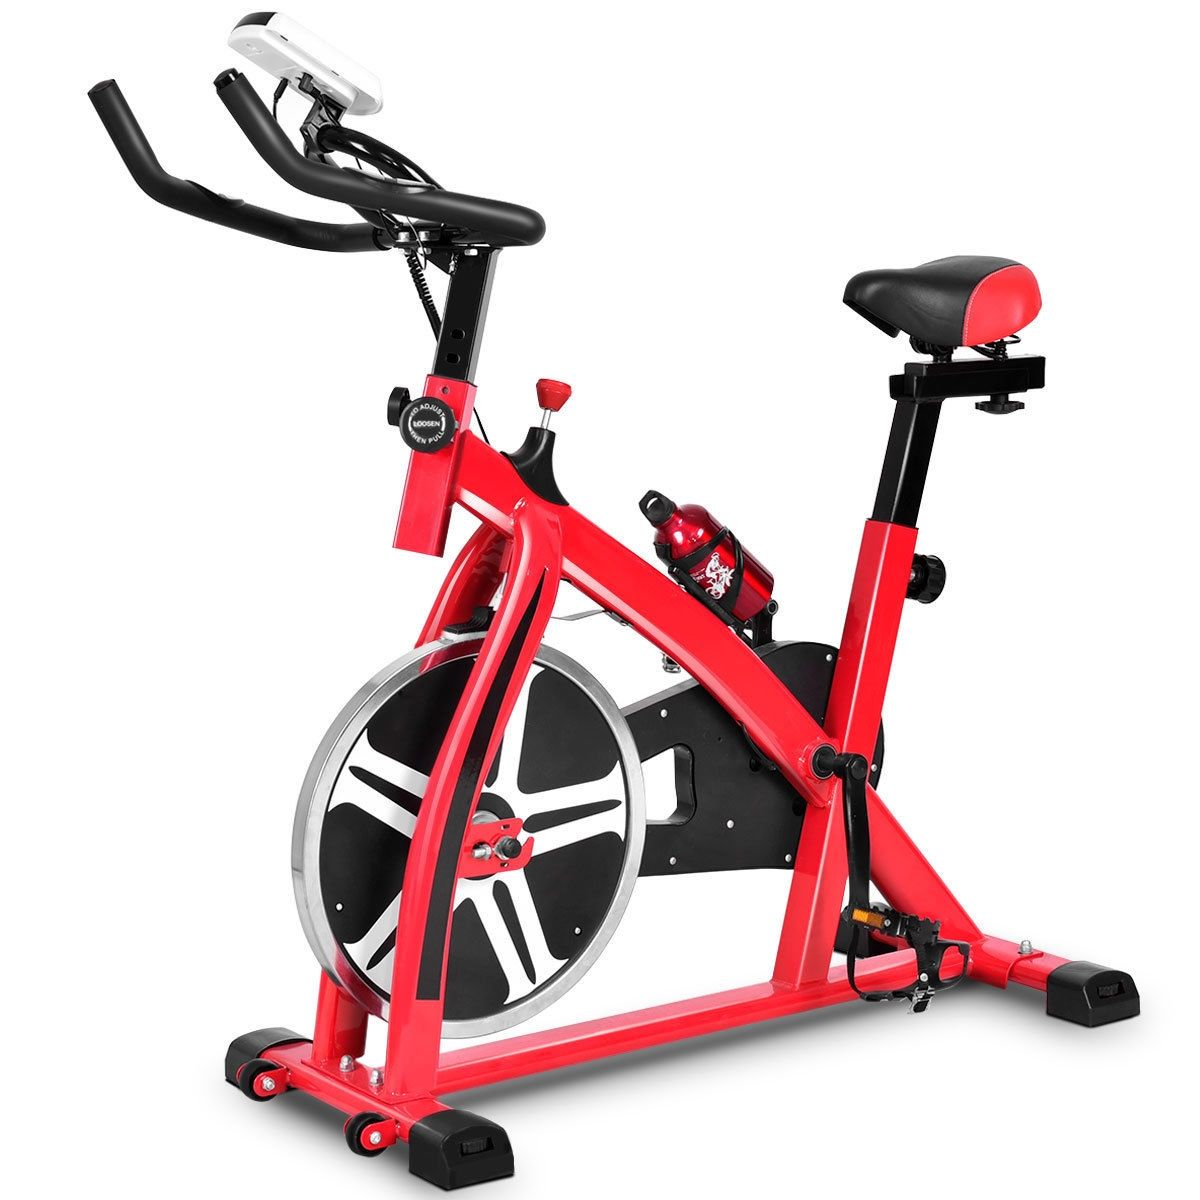 Adjustable Exercise Bicycle Cycling Cardio Fitness Bicycle